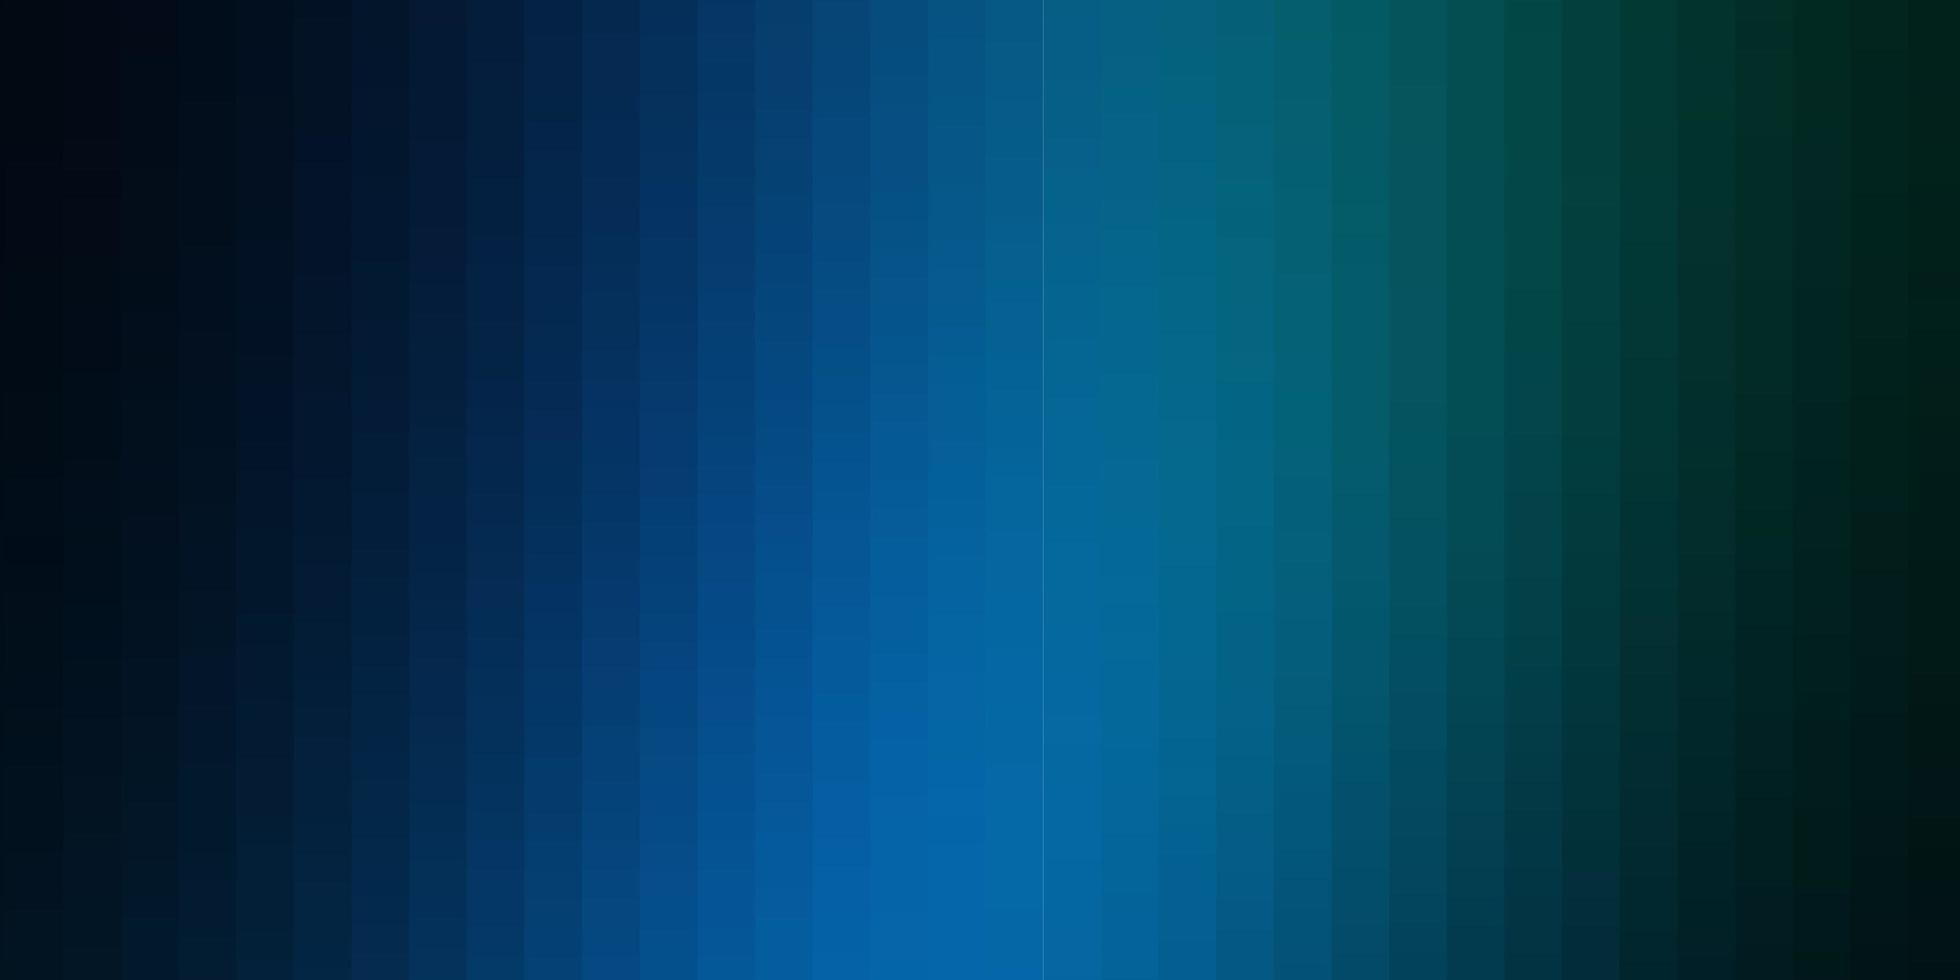 Light Blue, Green vector background in polygonal style.